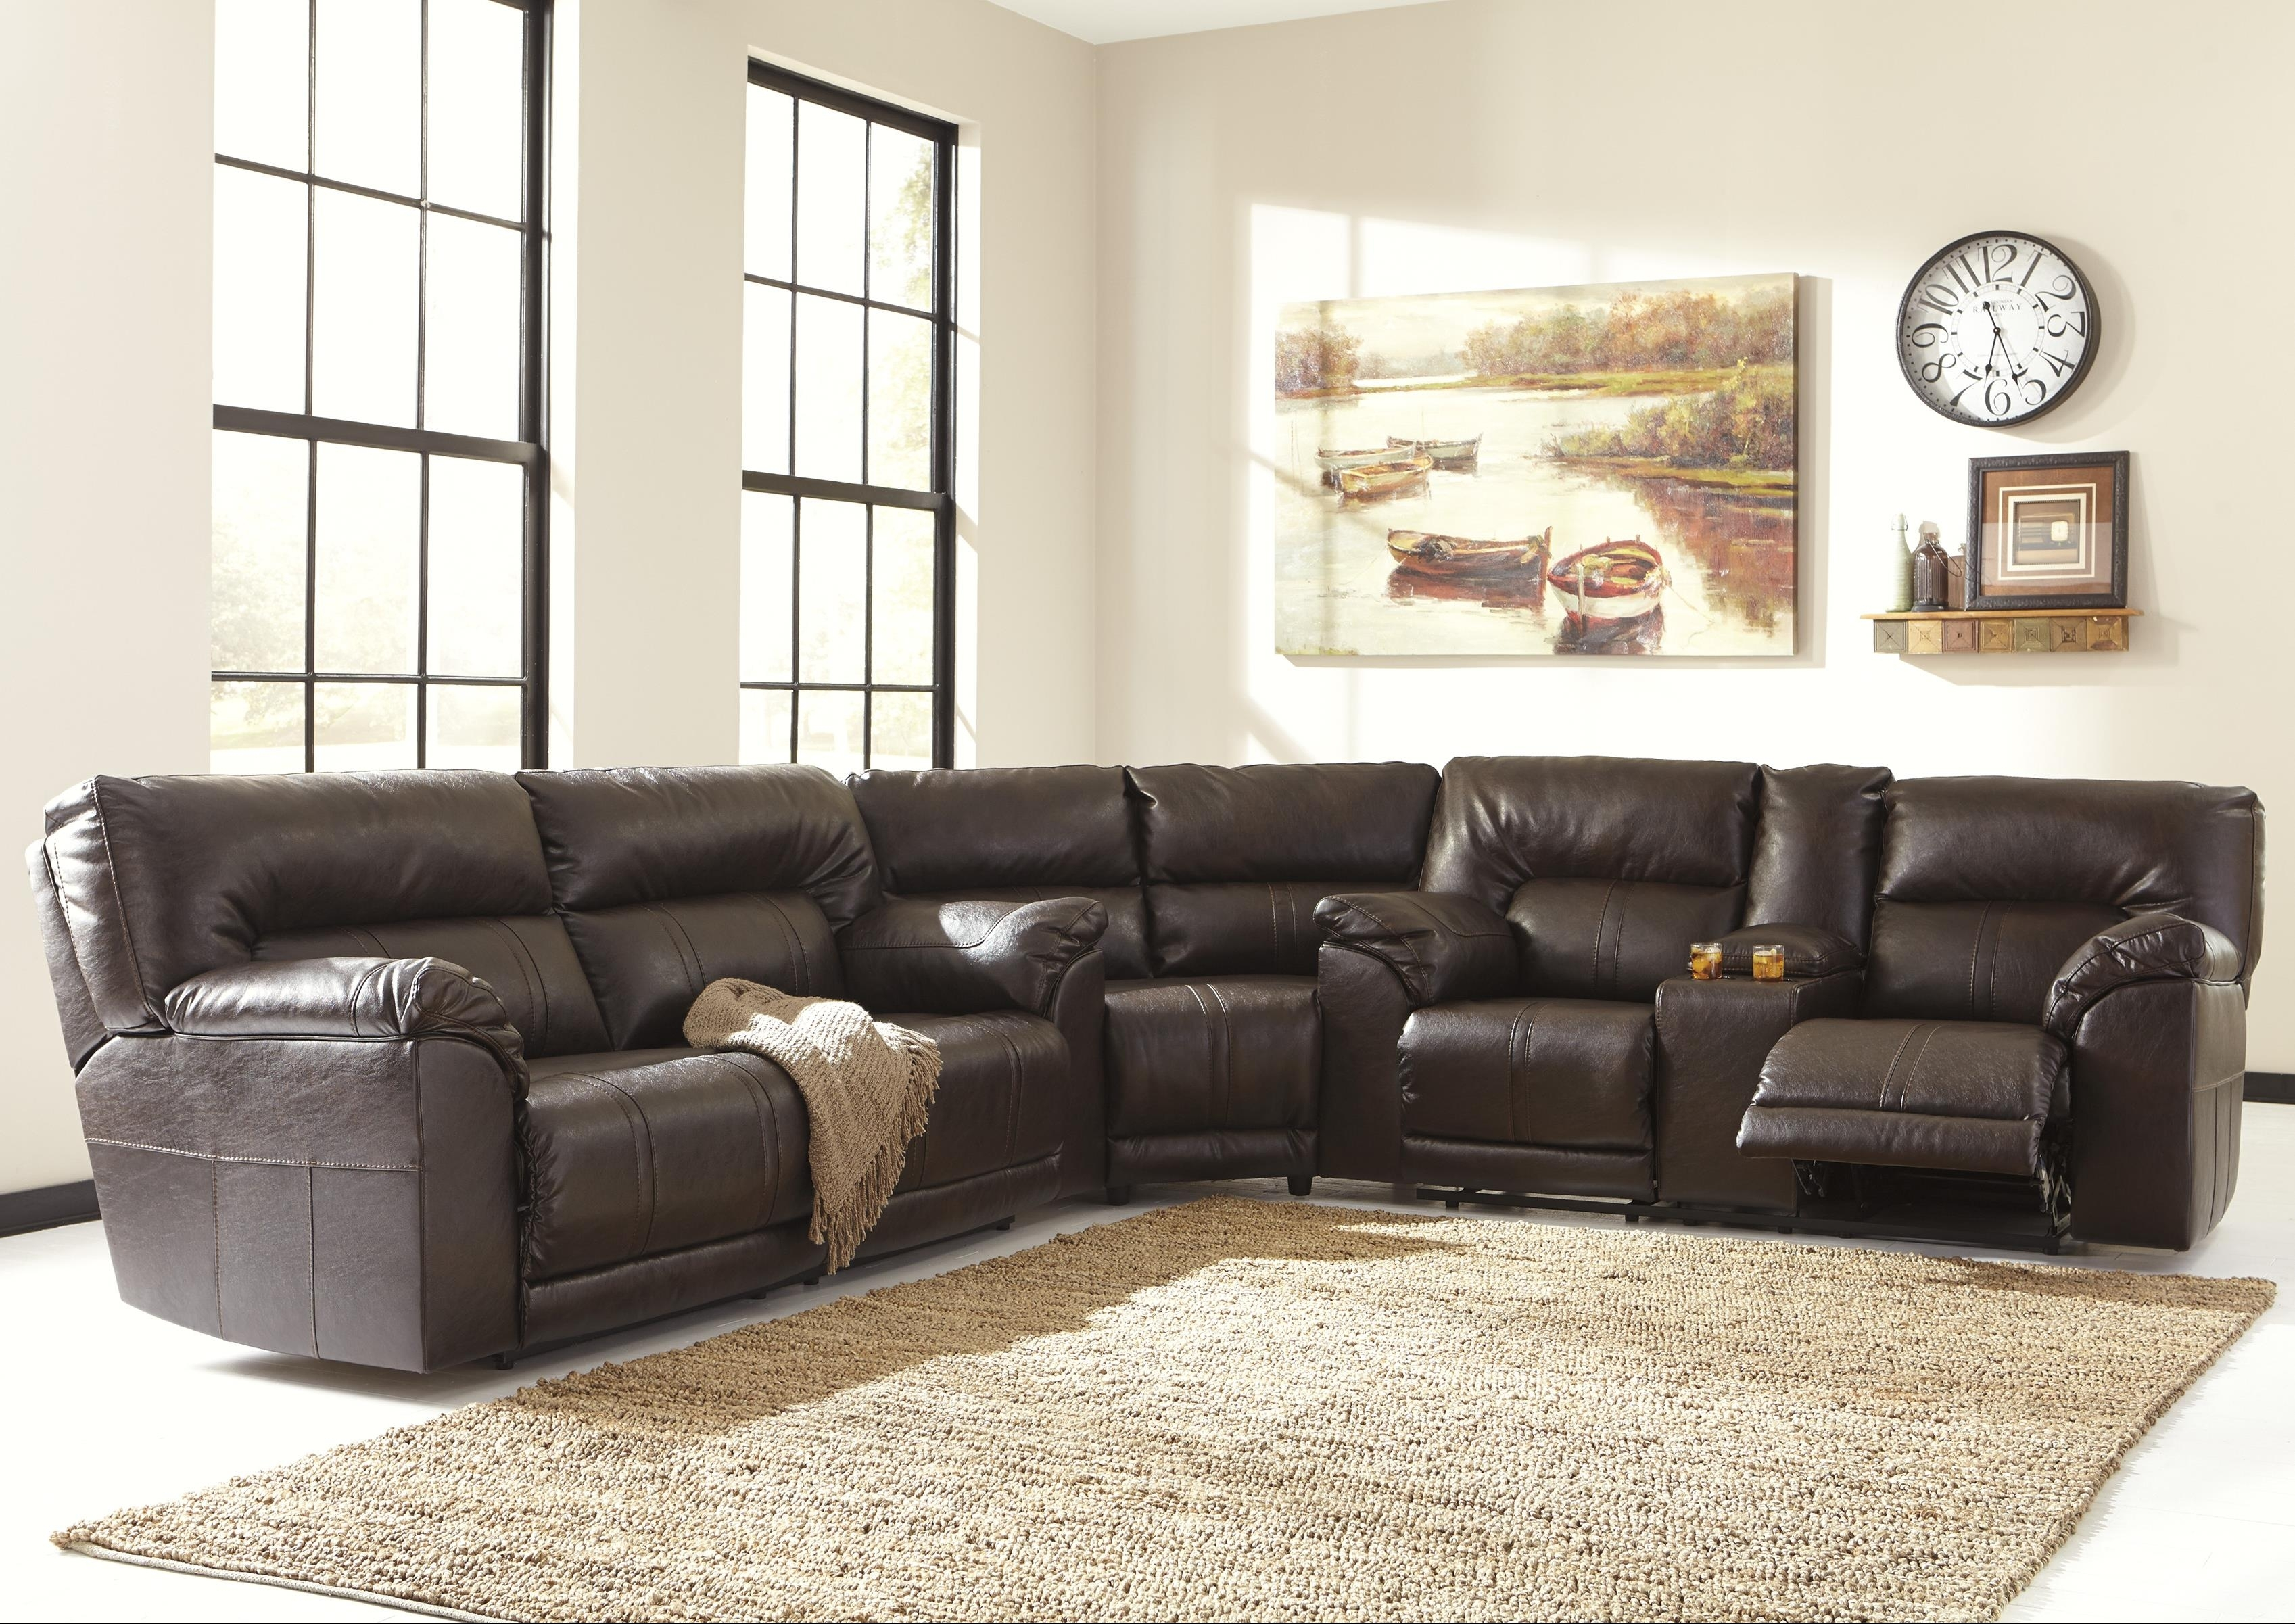 Benchcraftashley Barrettsville Durablend® 3 Piece Reclining In Jackson 6 Piece Power Reclining Sectionals (View 8 of 25)